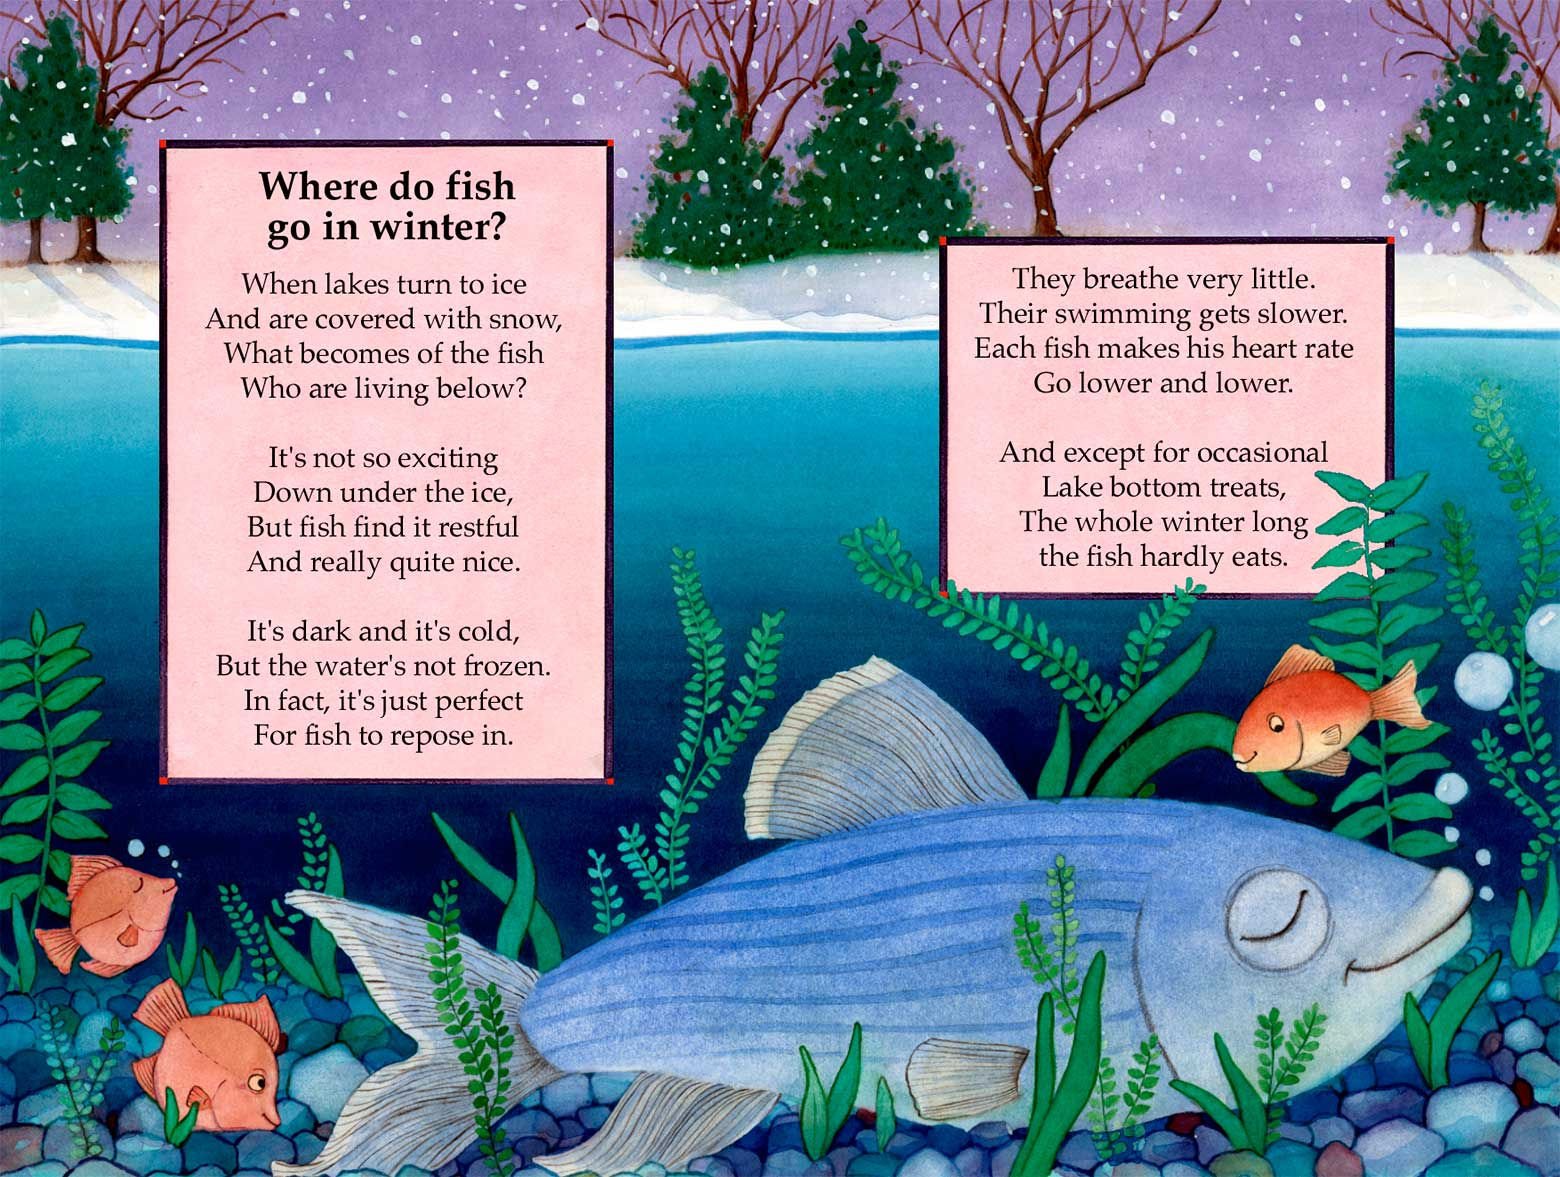 Where Fish Go in Winter by Laura J. Bryant